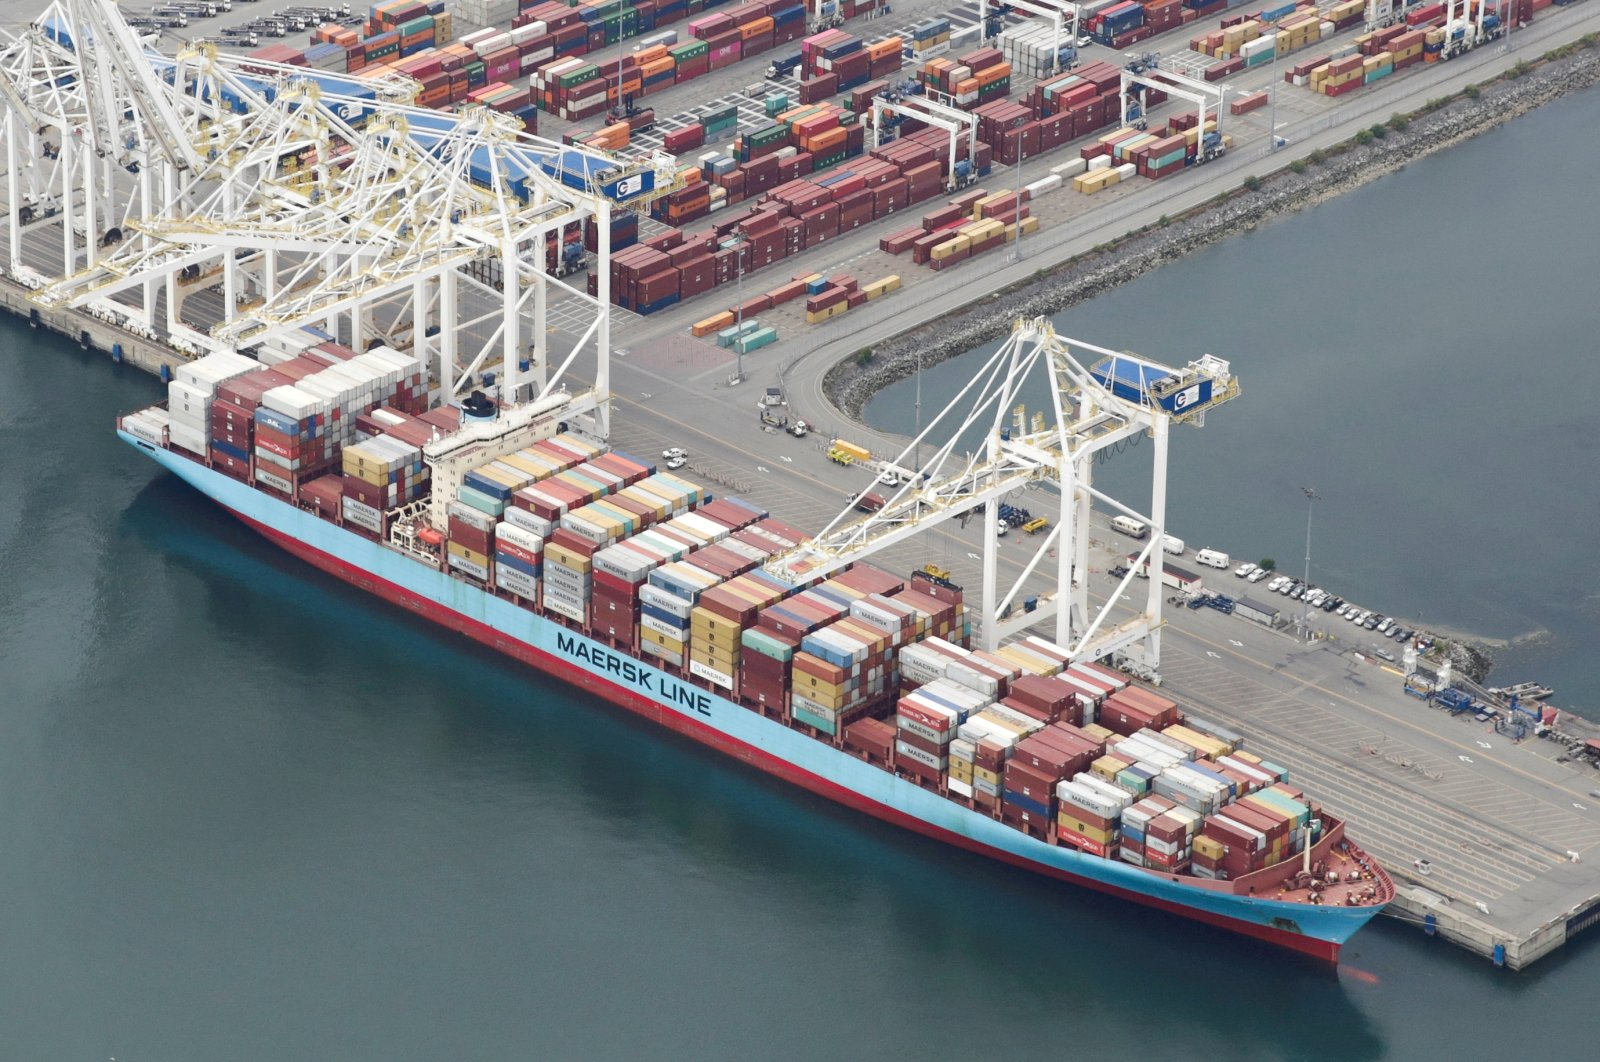 The ship Anna Maersk is docked at Roberts Bank port carrying 69 containers of mostly paper and plastic waste returned by the Philippines in Vancouver, British Columbia, Canada on June 29, 2019. (Reuters Photo)